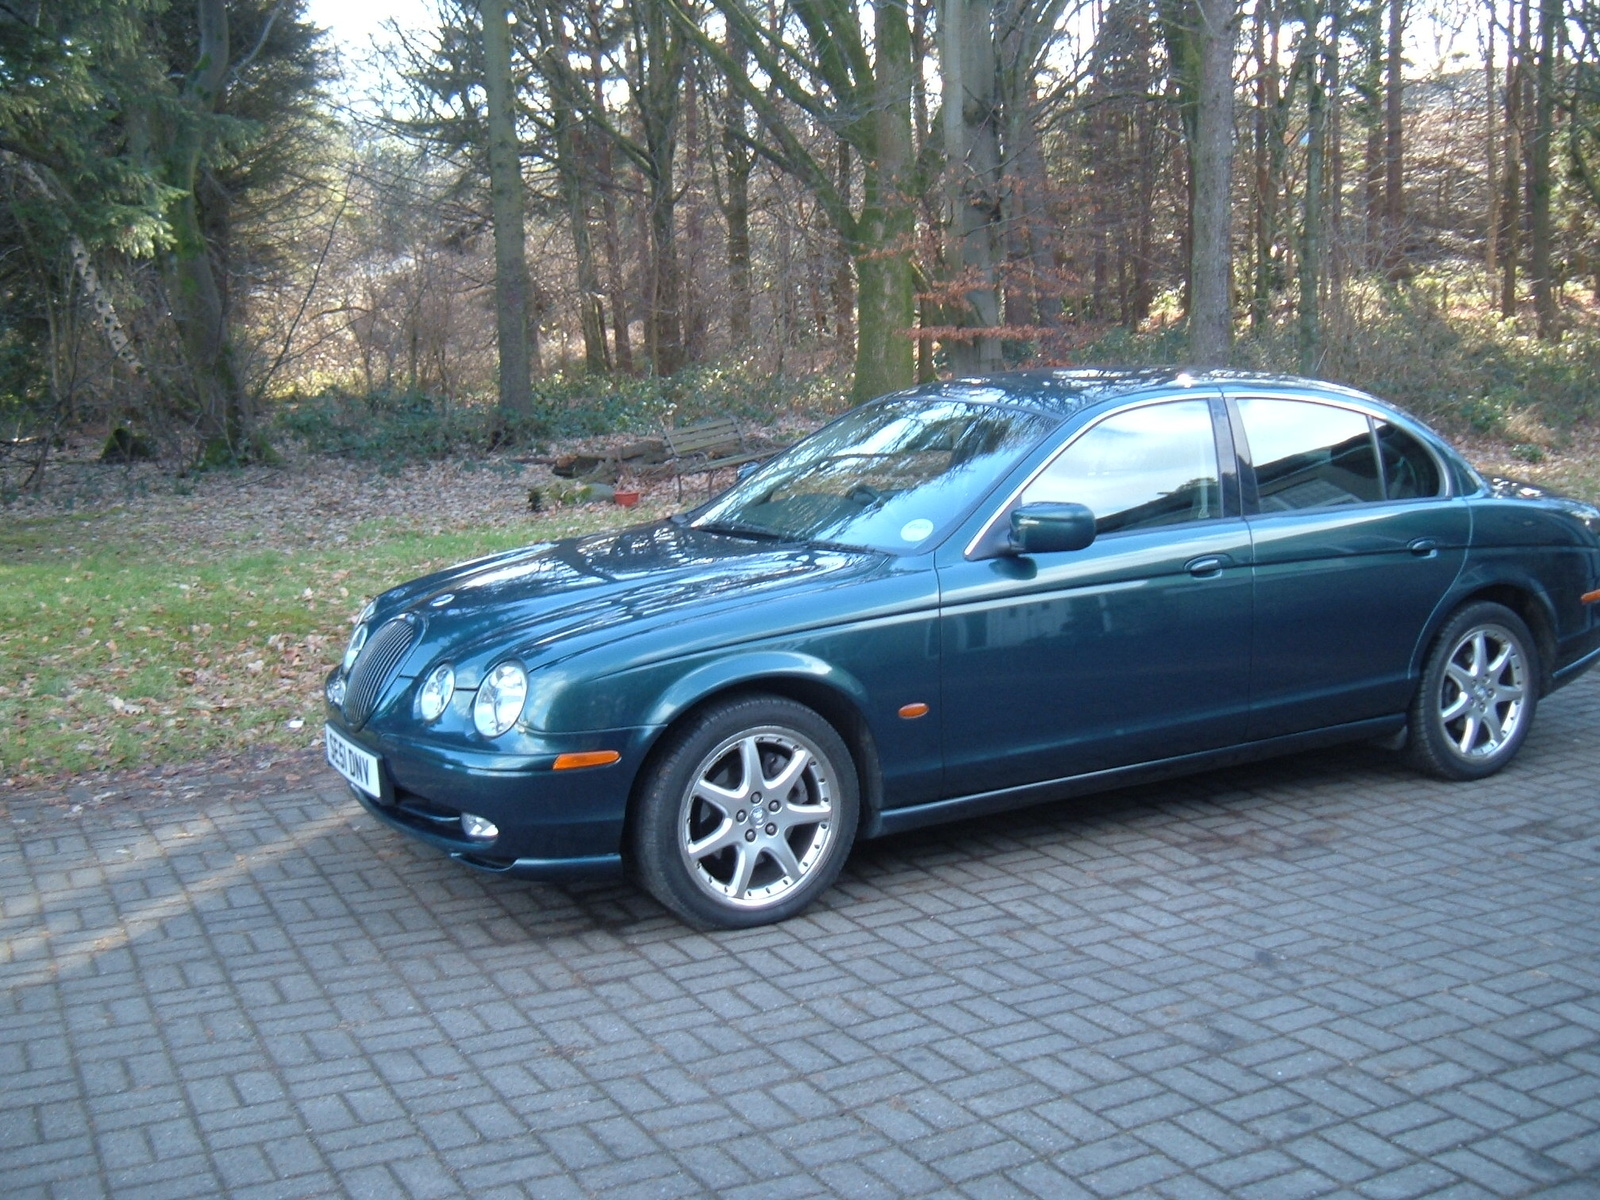 Picture of 2002 Jaguar S-Type 3.0, exterior